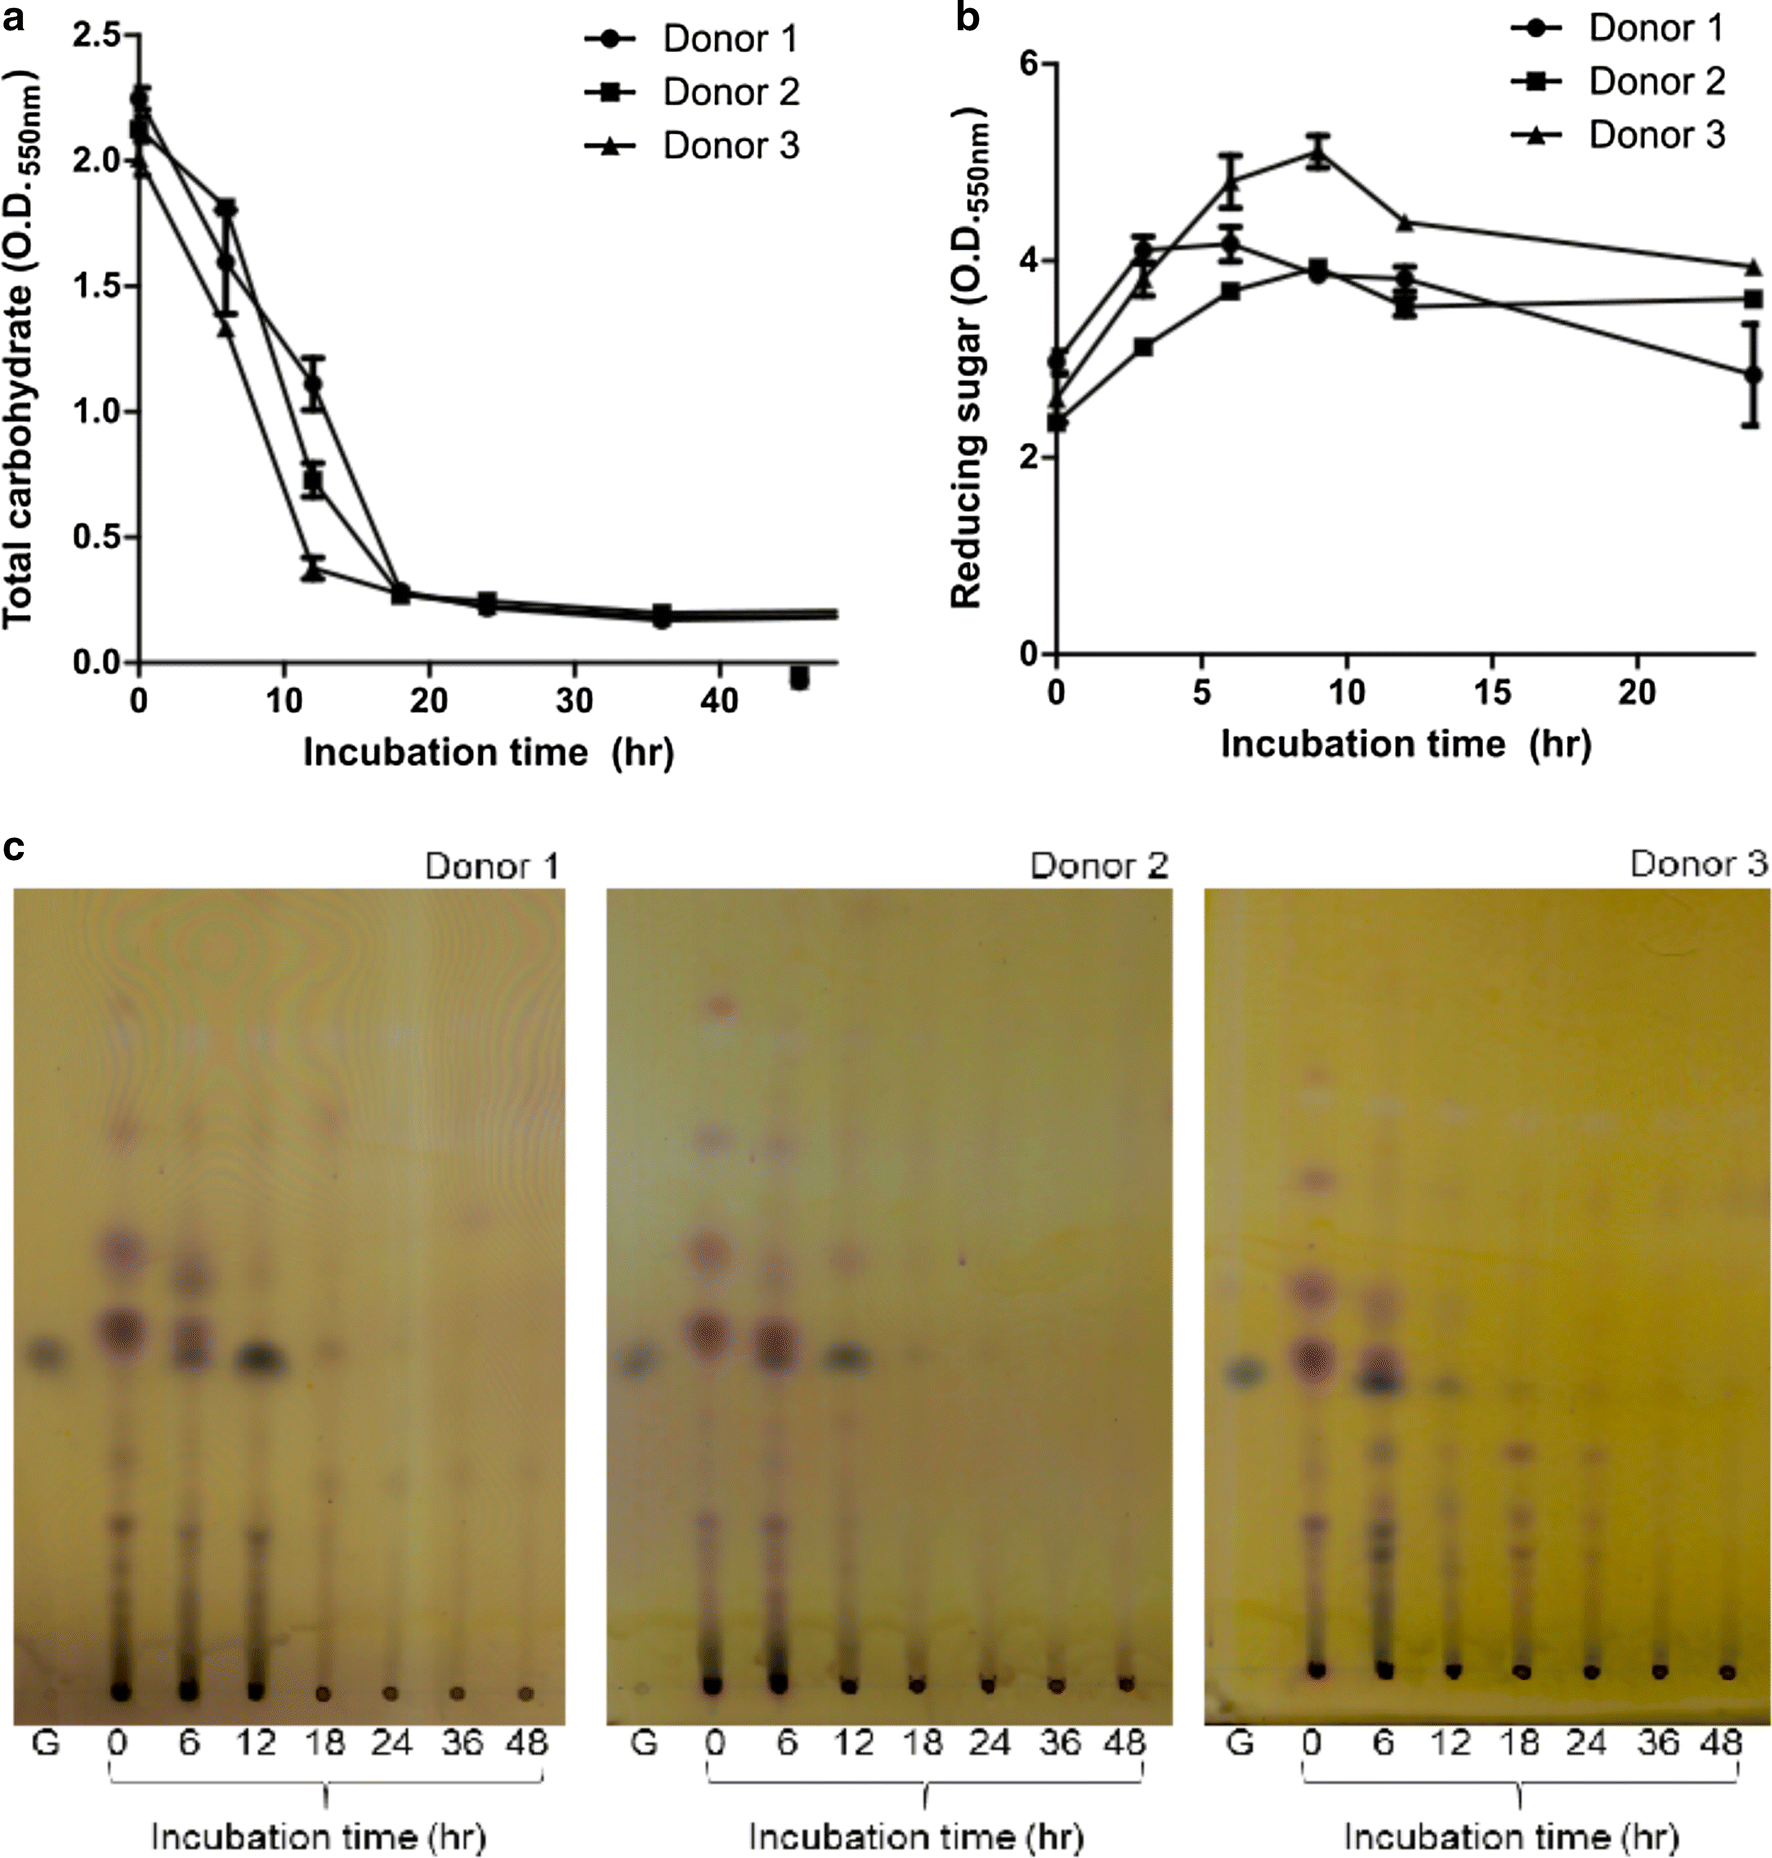 The influence of in vitro pectin fermentation on the human fecal